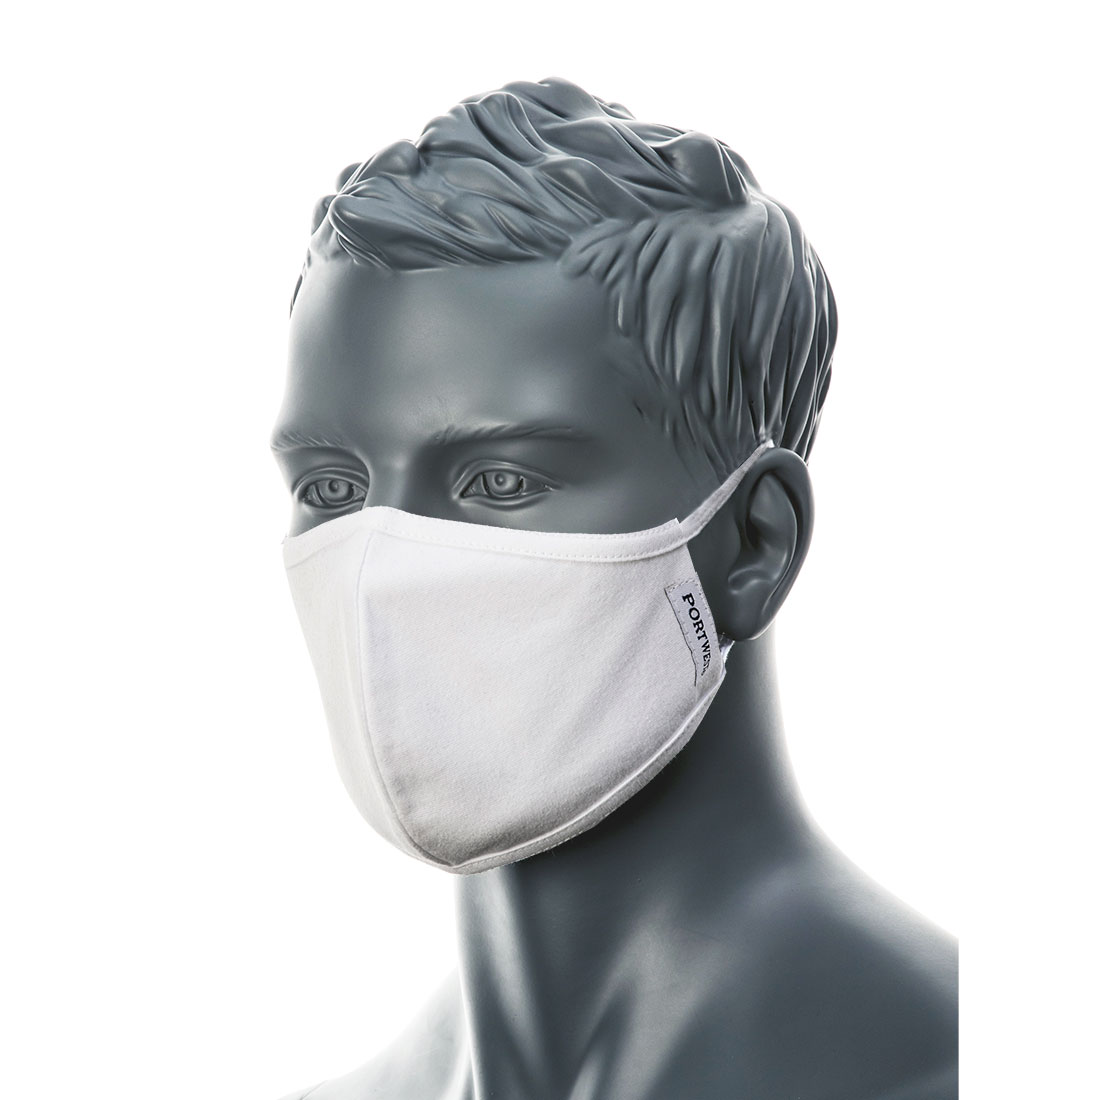 Respiratory Protection, Community Masks